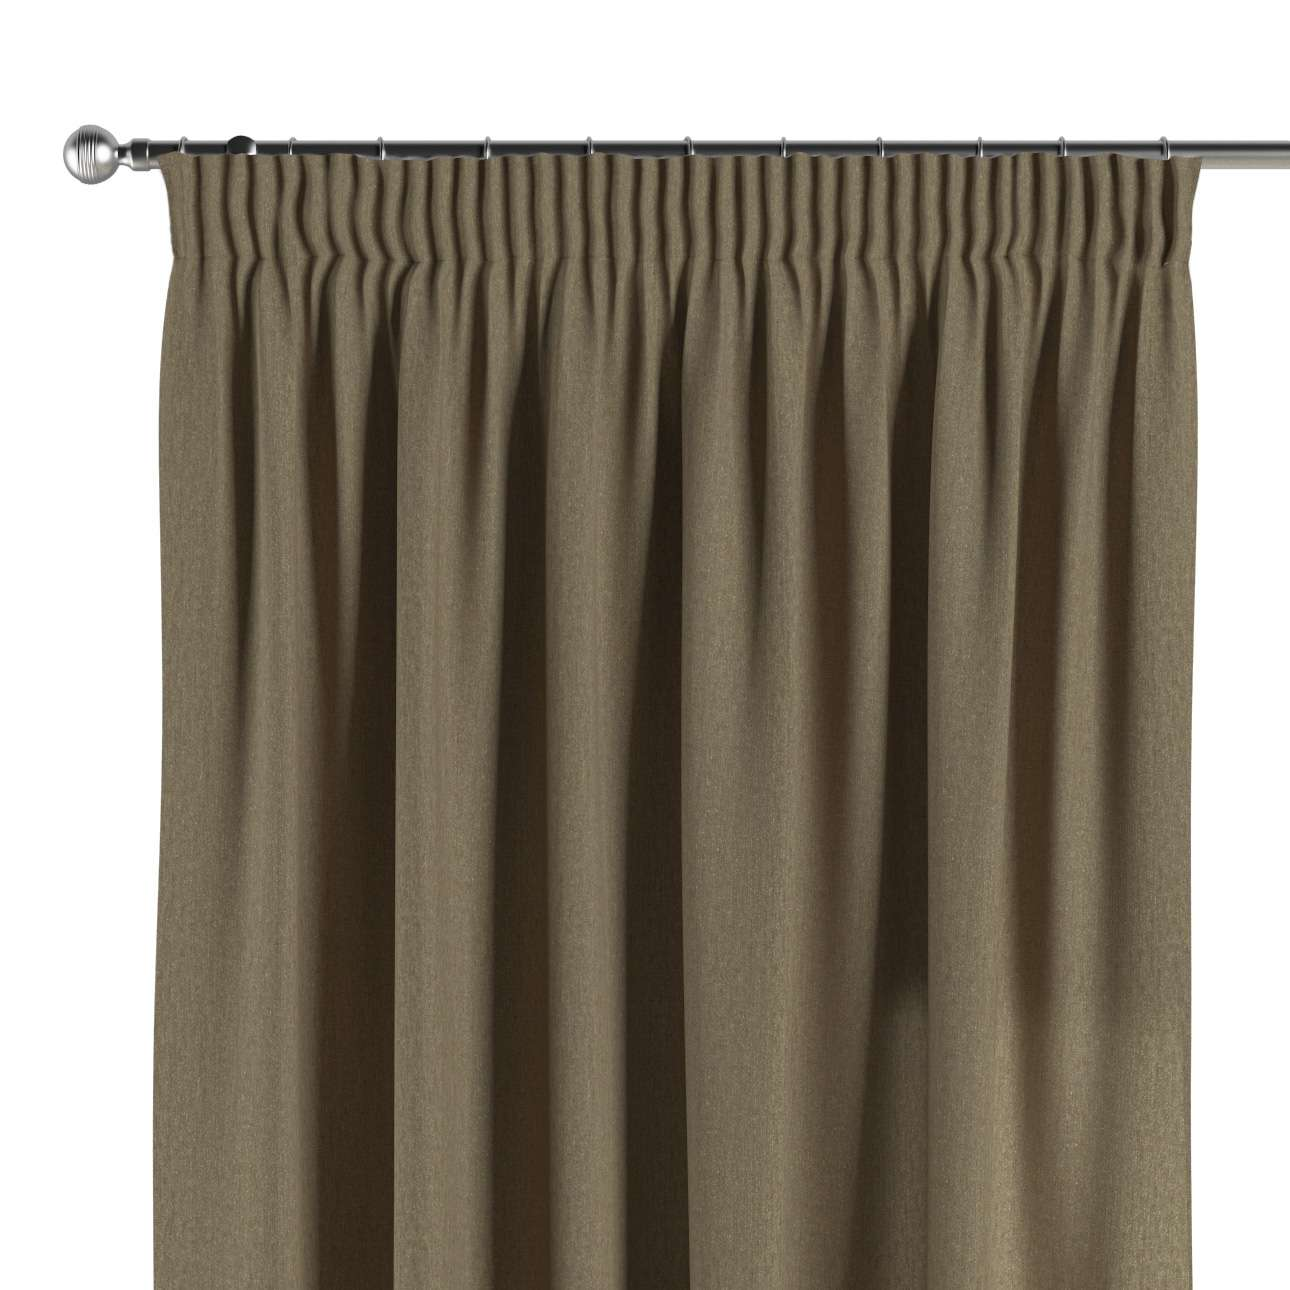 Pencil pleat curtains in collection Chenille, fabric: 702-21